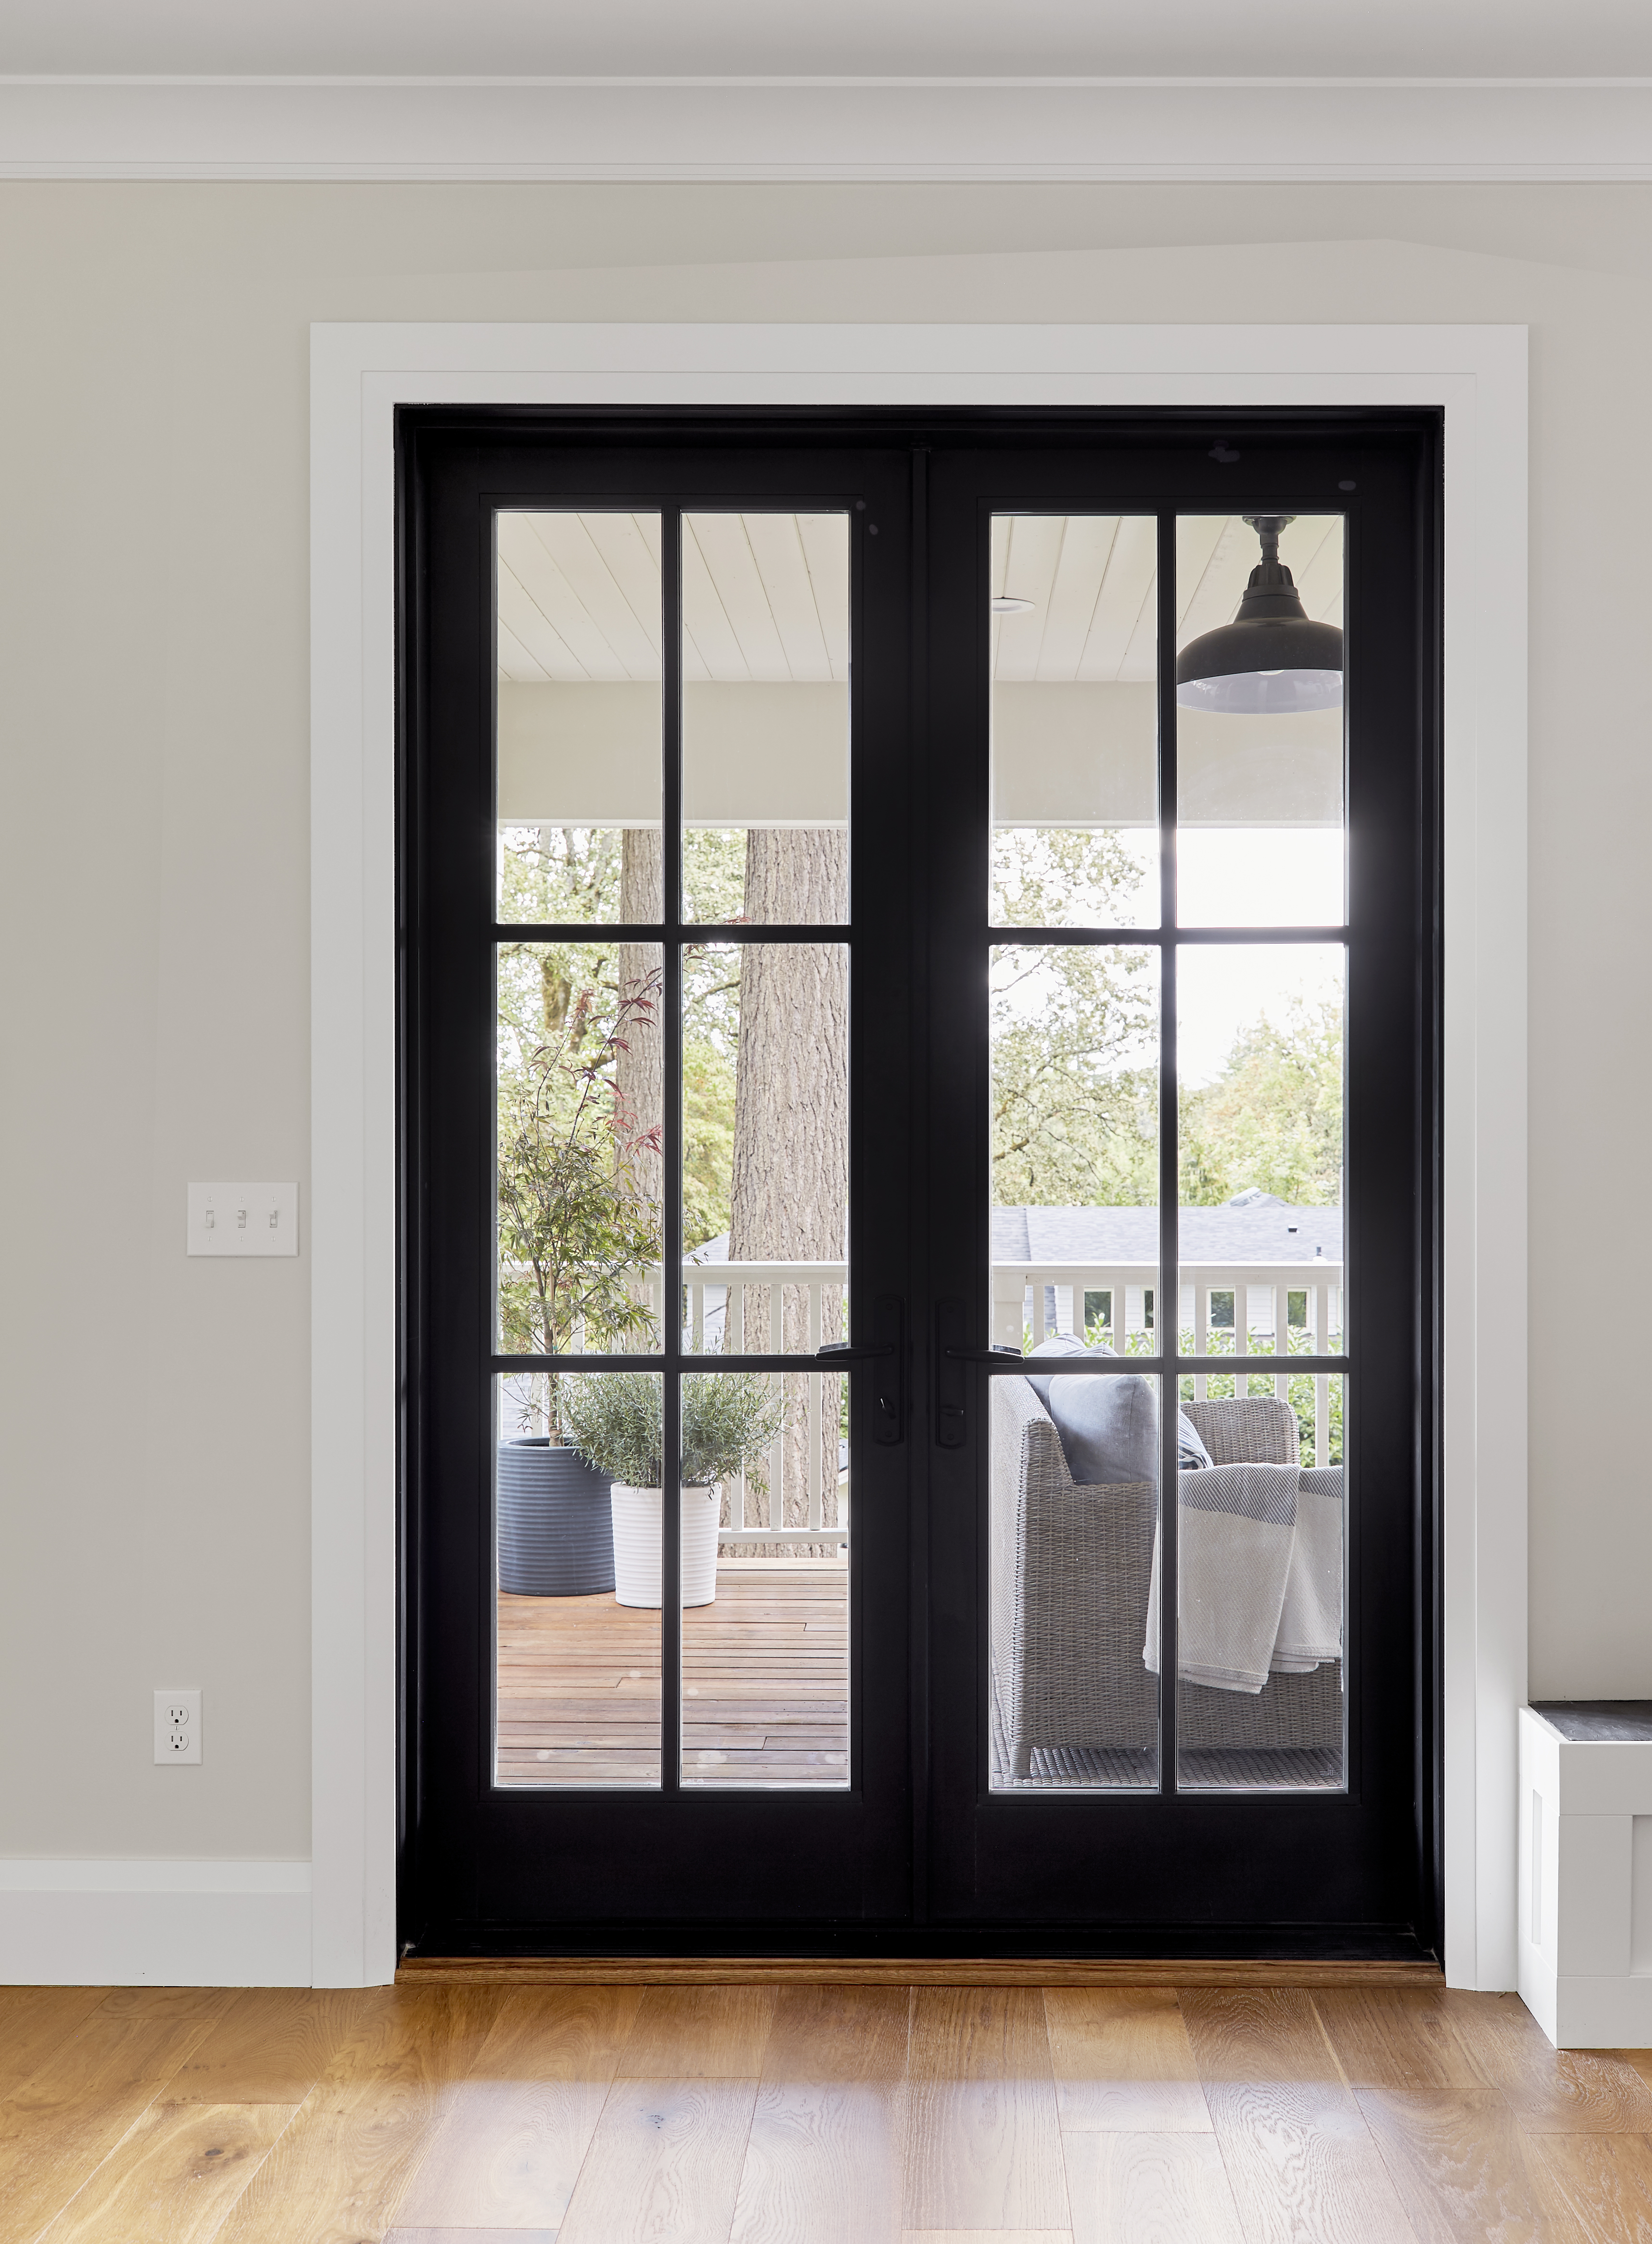 Why We Love These Black Framed Windows And Patio Doors